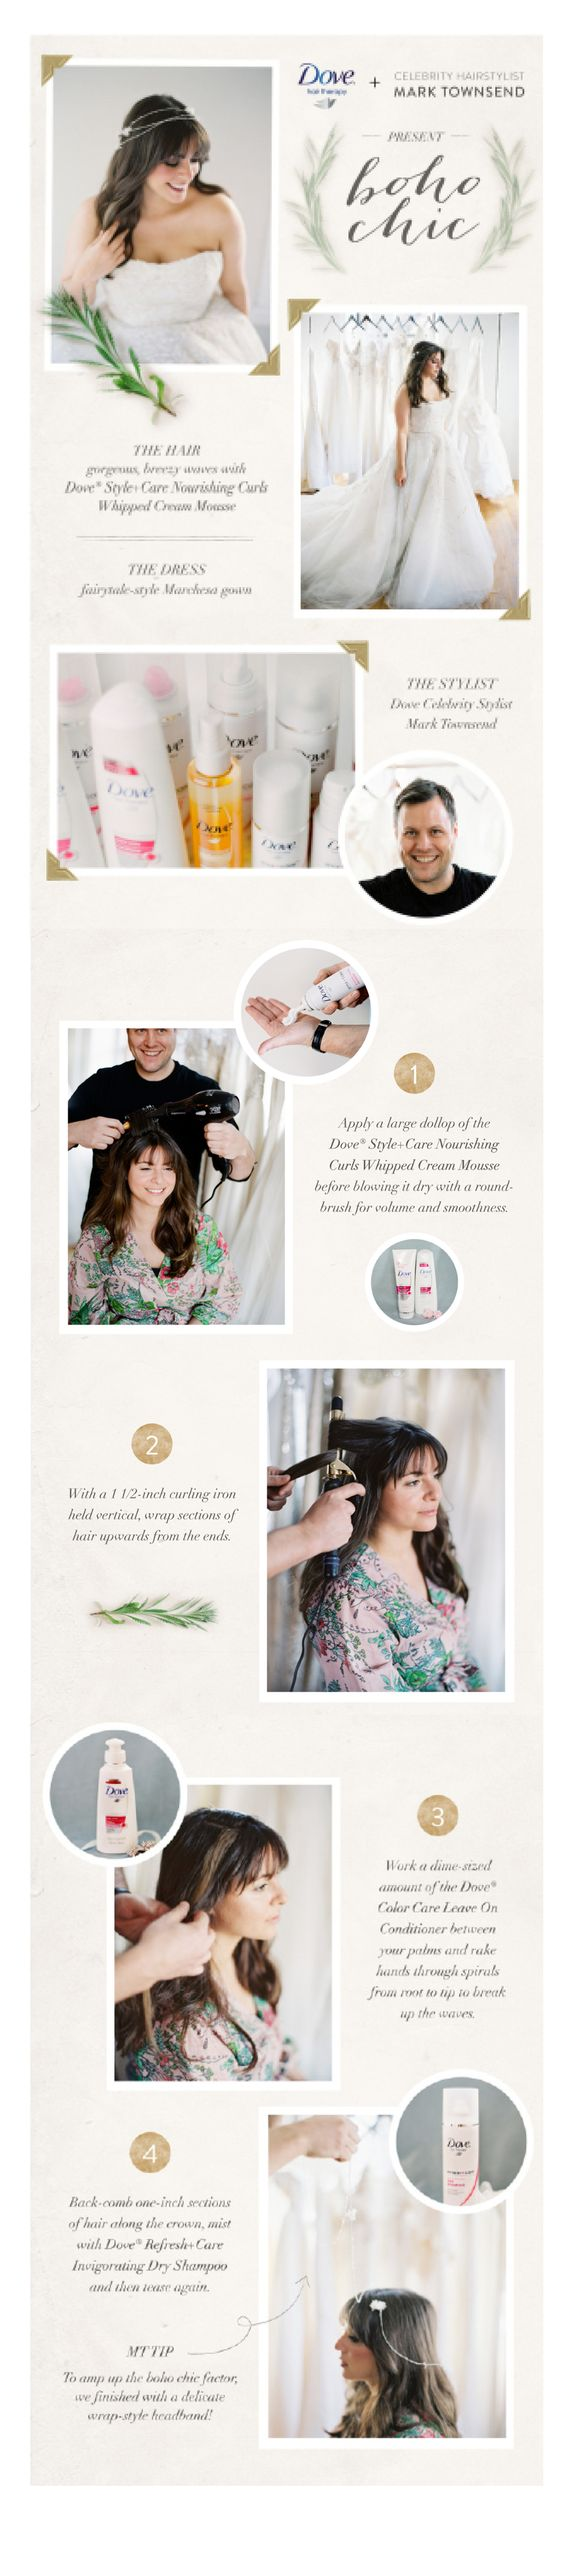 Step-by-step tutorial of Dove® Hair celebrity stylist Mark Townsend's Boho Chic wedding day style! — Photography by Anne Robert Photography / annerobertphotography.com, Hair Styling by Mark Townsend / www.starworksartists.com/hair/mark-townsend/bio, Hair Products by Dove® Hair / www.dove.us/Products/Hair/default.aspx, Location by Gabriella New York Bridal Salon / gabriellanewyork.com, Makeup by Sharon Becker / sb-beauty.net